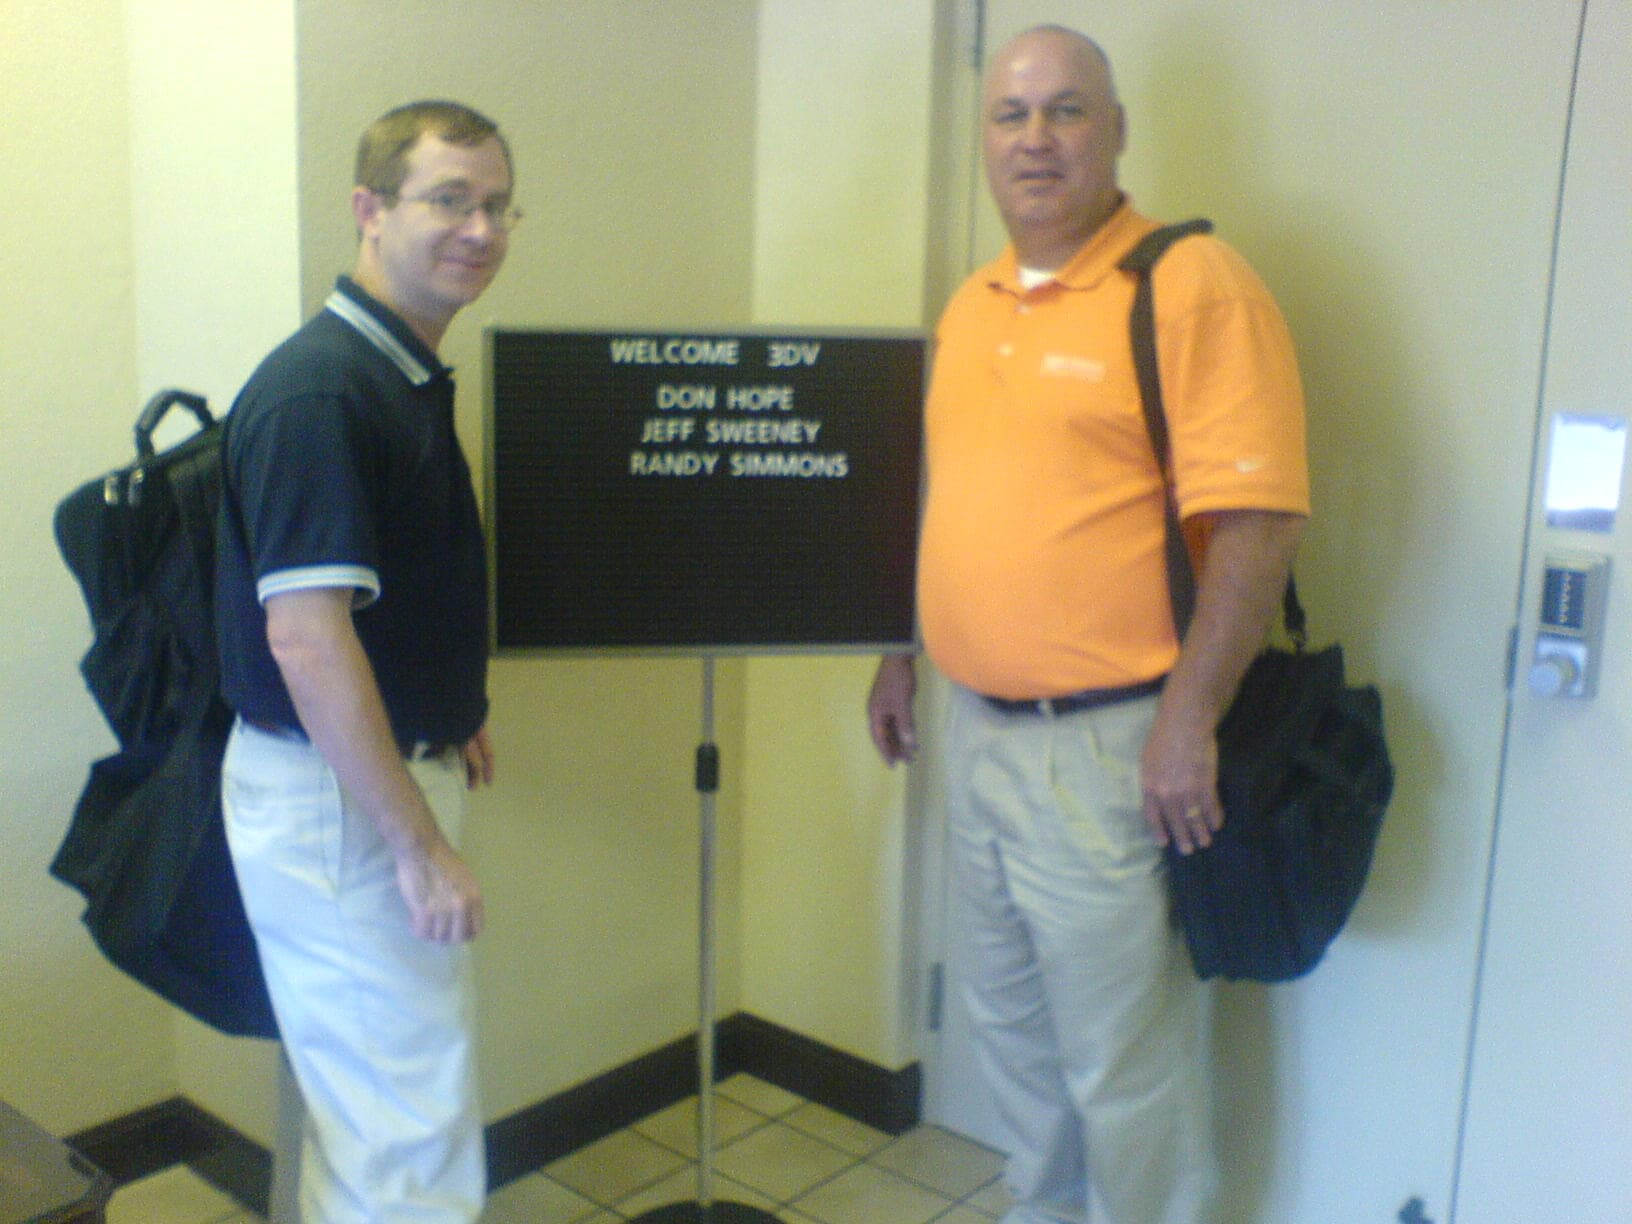 Don Hope and Jeff Sweeney make a visit in Sidney Ohio